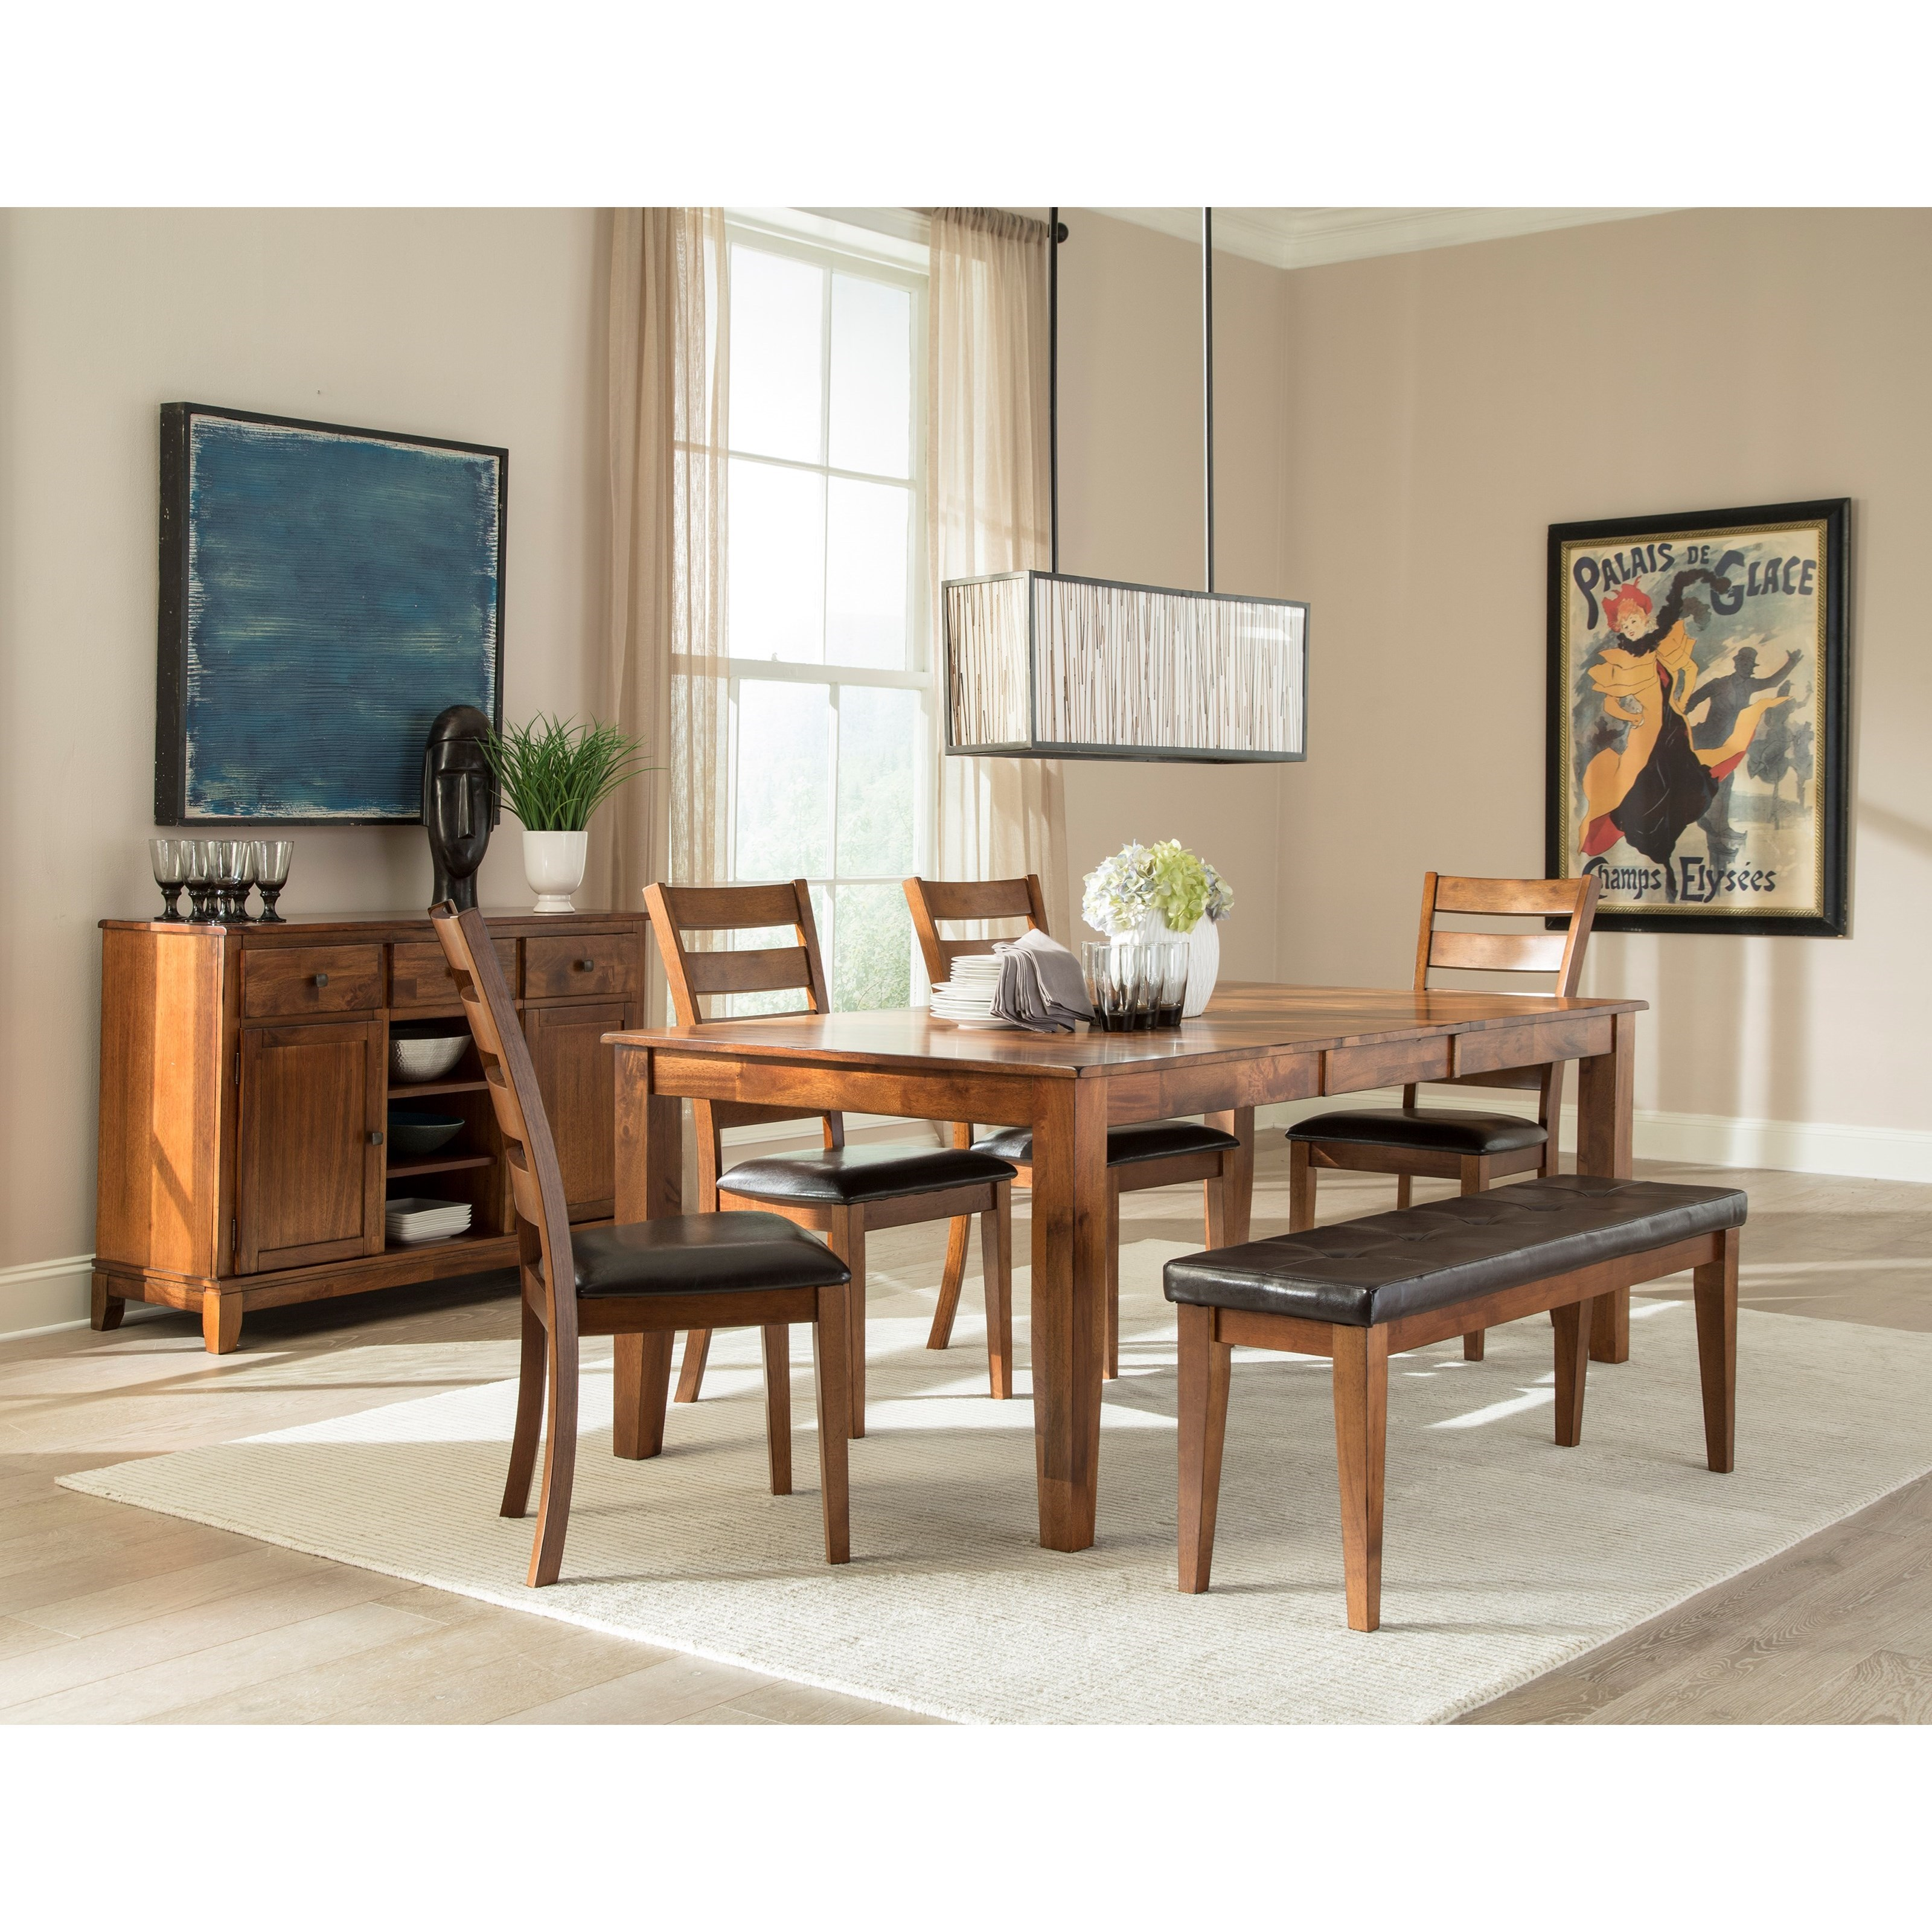 Kona Formal Dining Room Group by Intercon at Dinette Depot